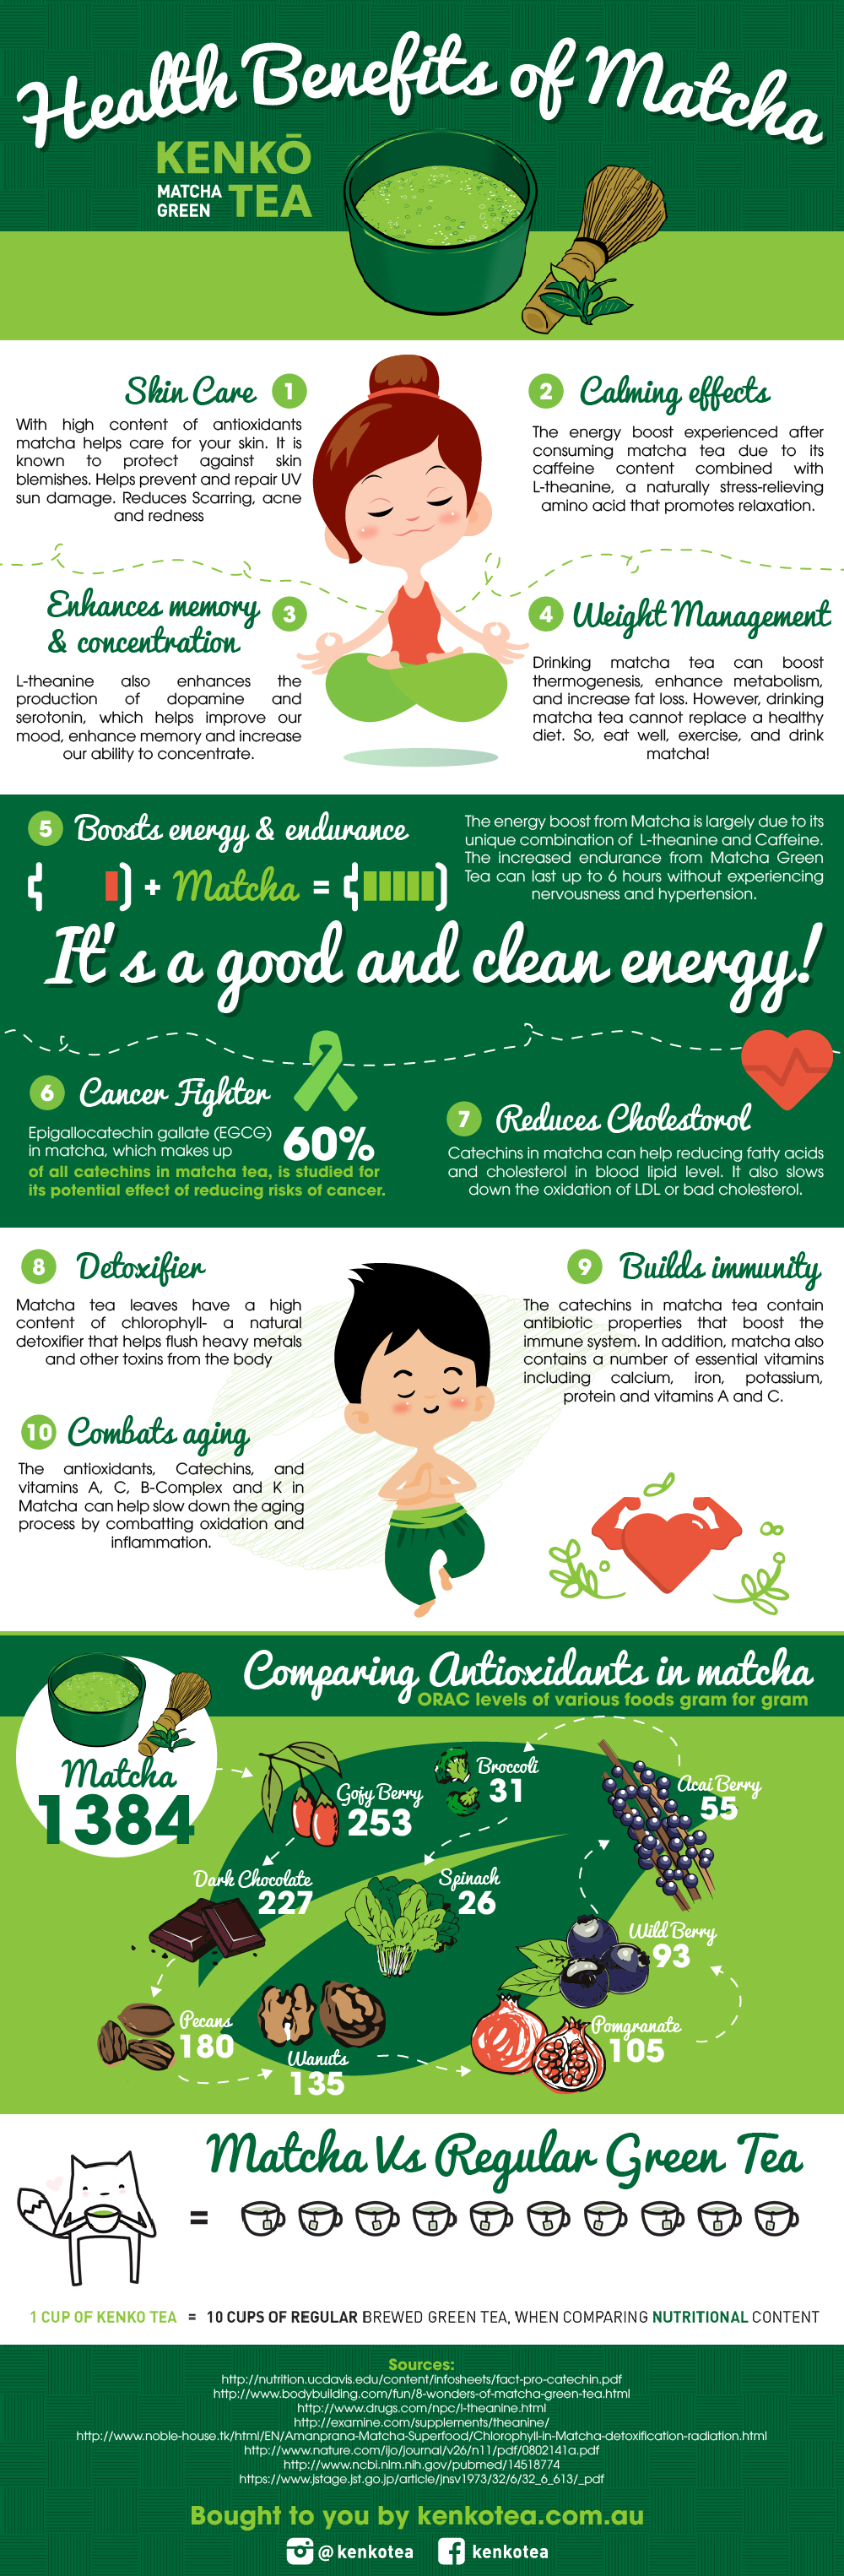 Astounding Health Benefits Of Matcha Green Tea Infographic